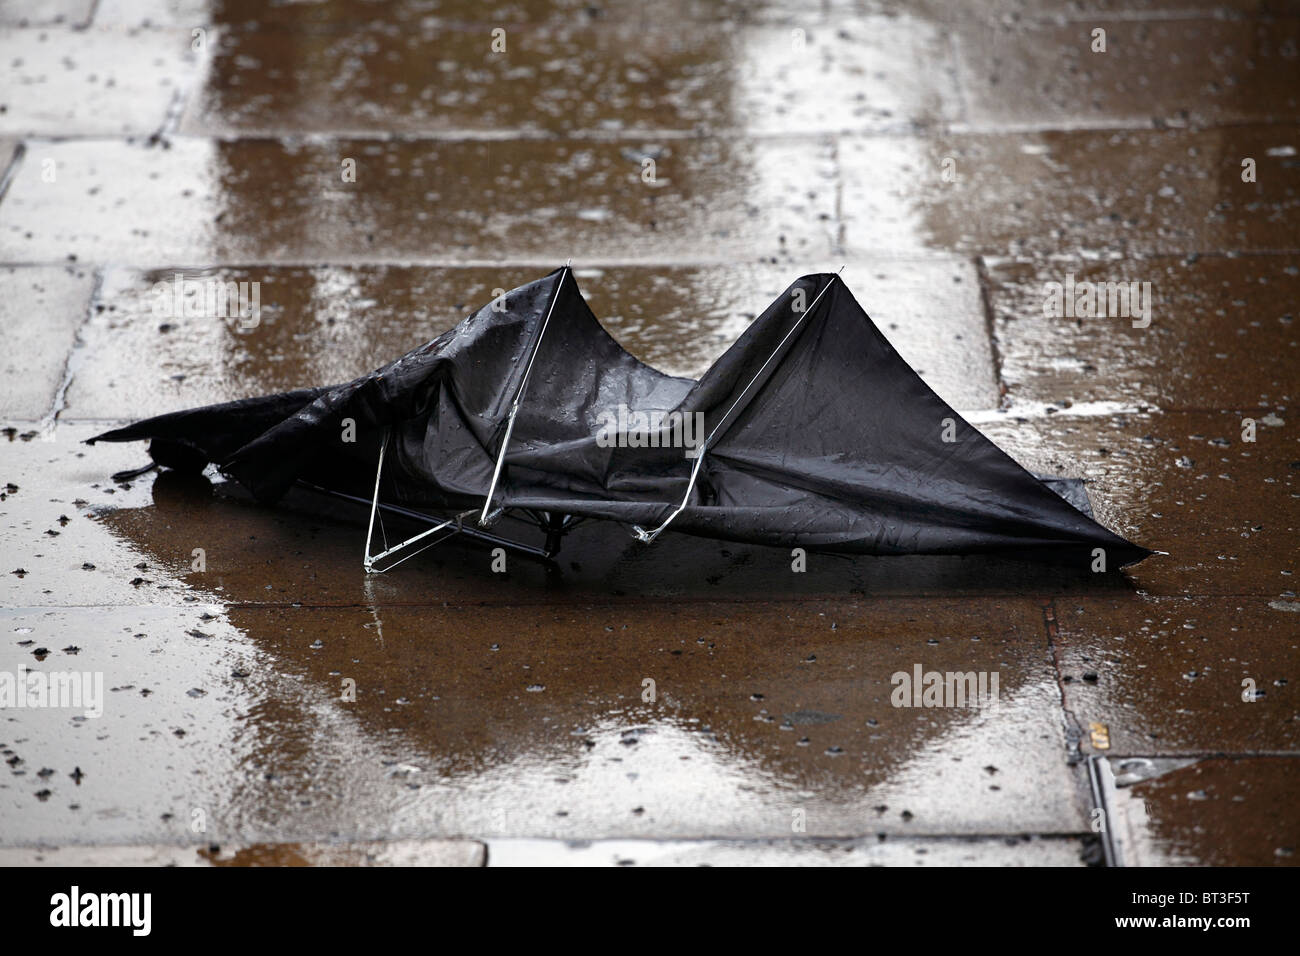 Discarded broken Umbrella in the wet - Stock Image